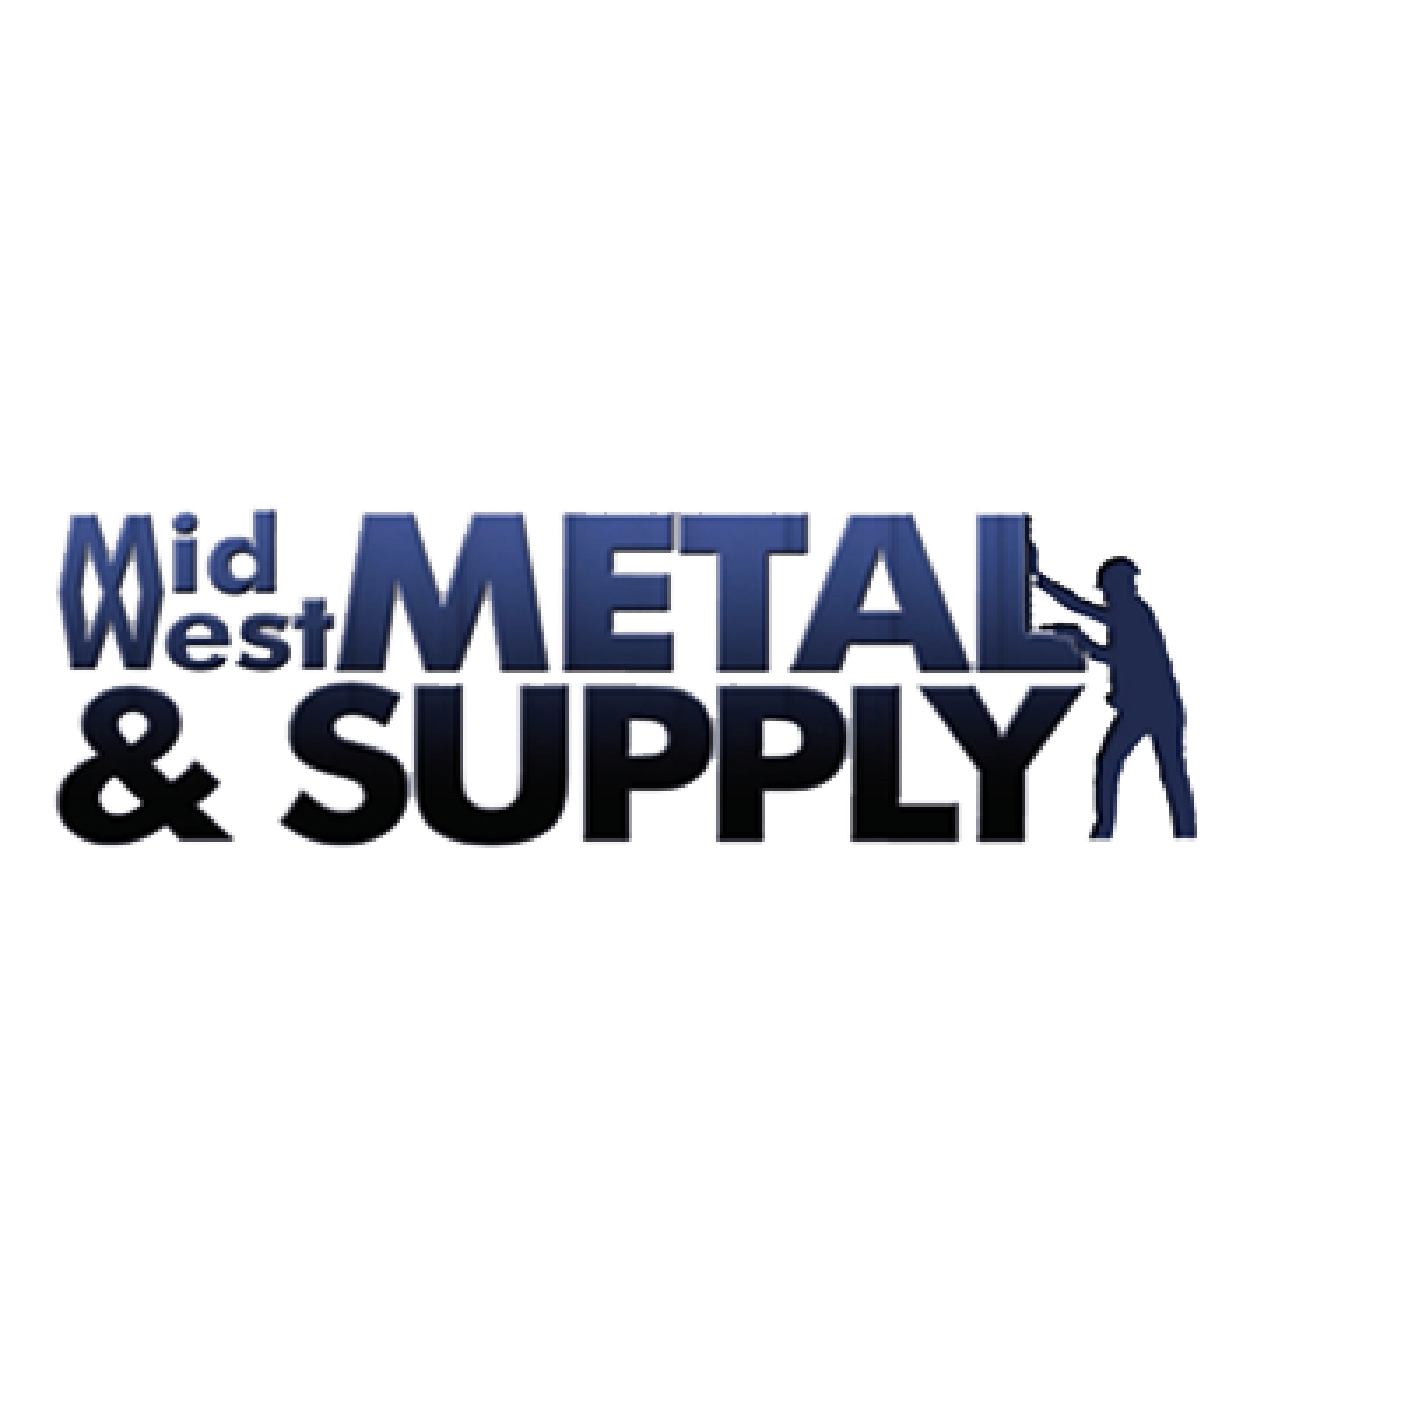 Midwest Metal and Supply